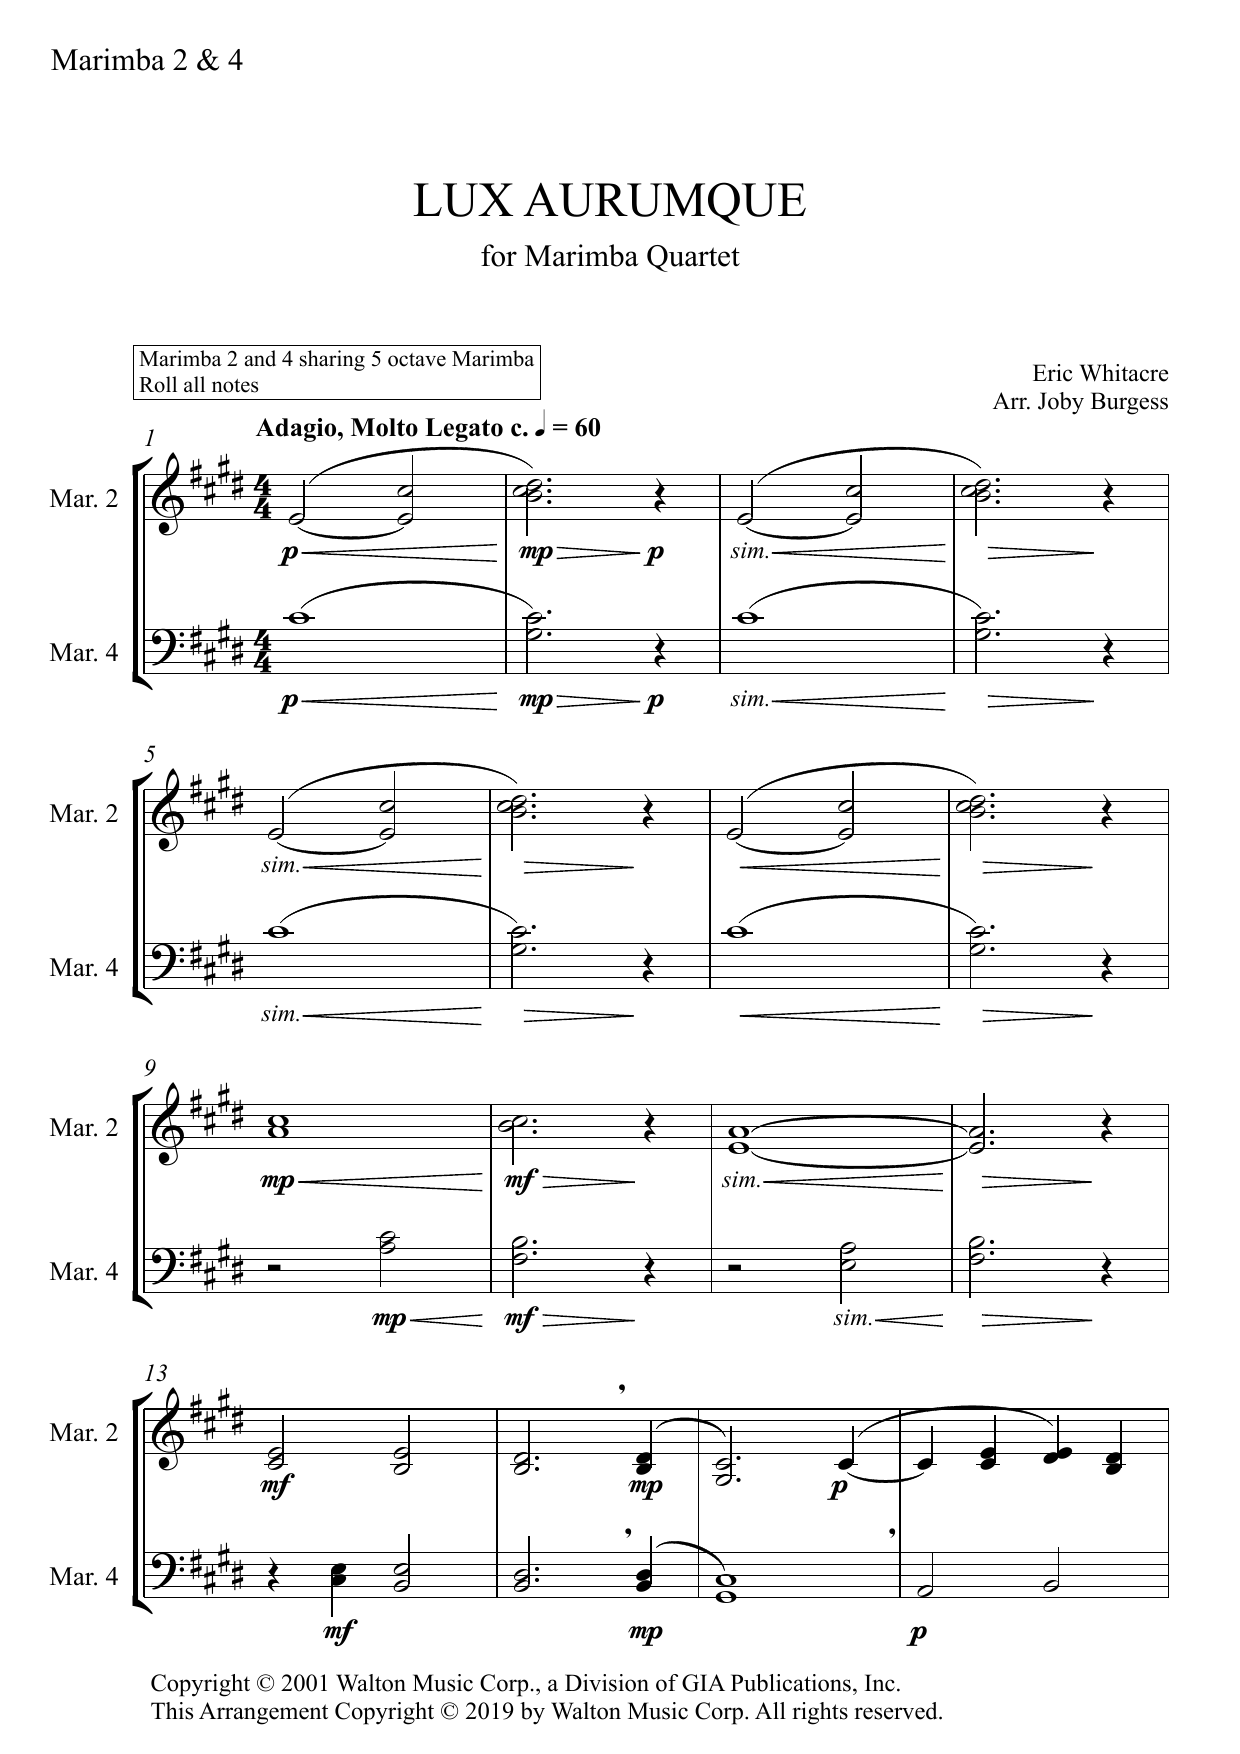 Lux Aurumque for Marimba Quartet (arr. Joby Burgess) - MARIMBA 2 & 4 Sheet Music